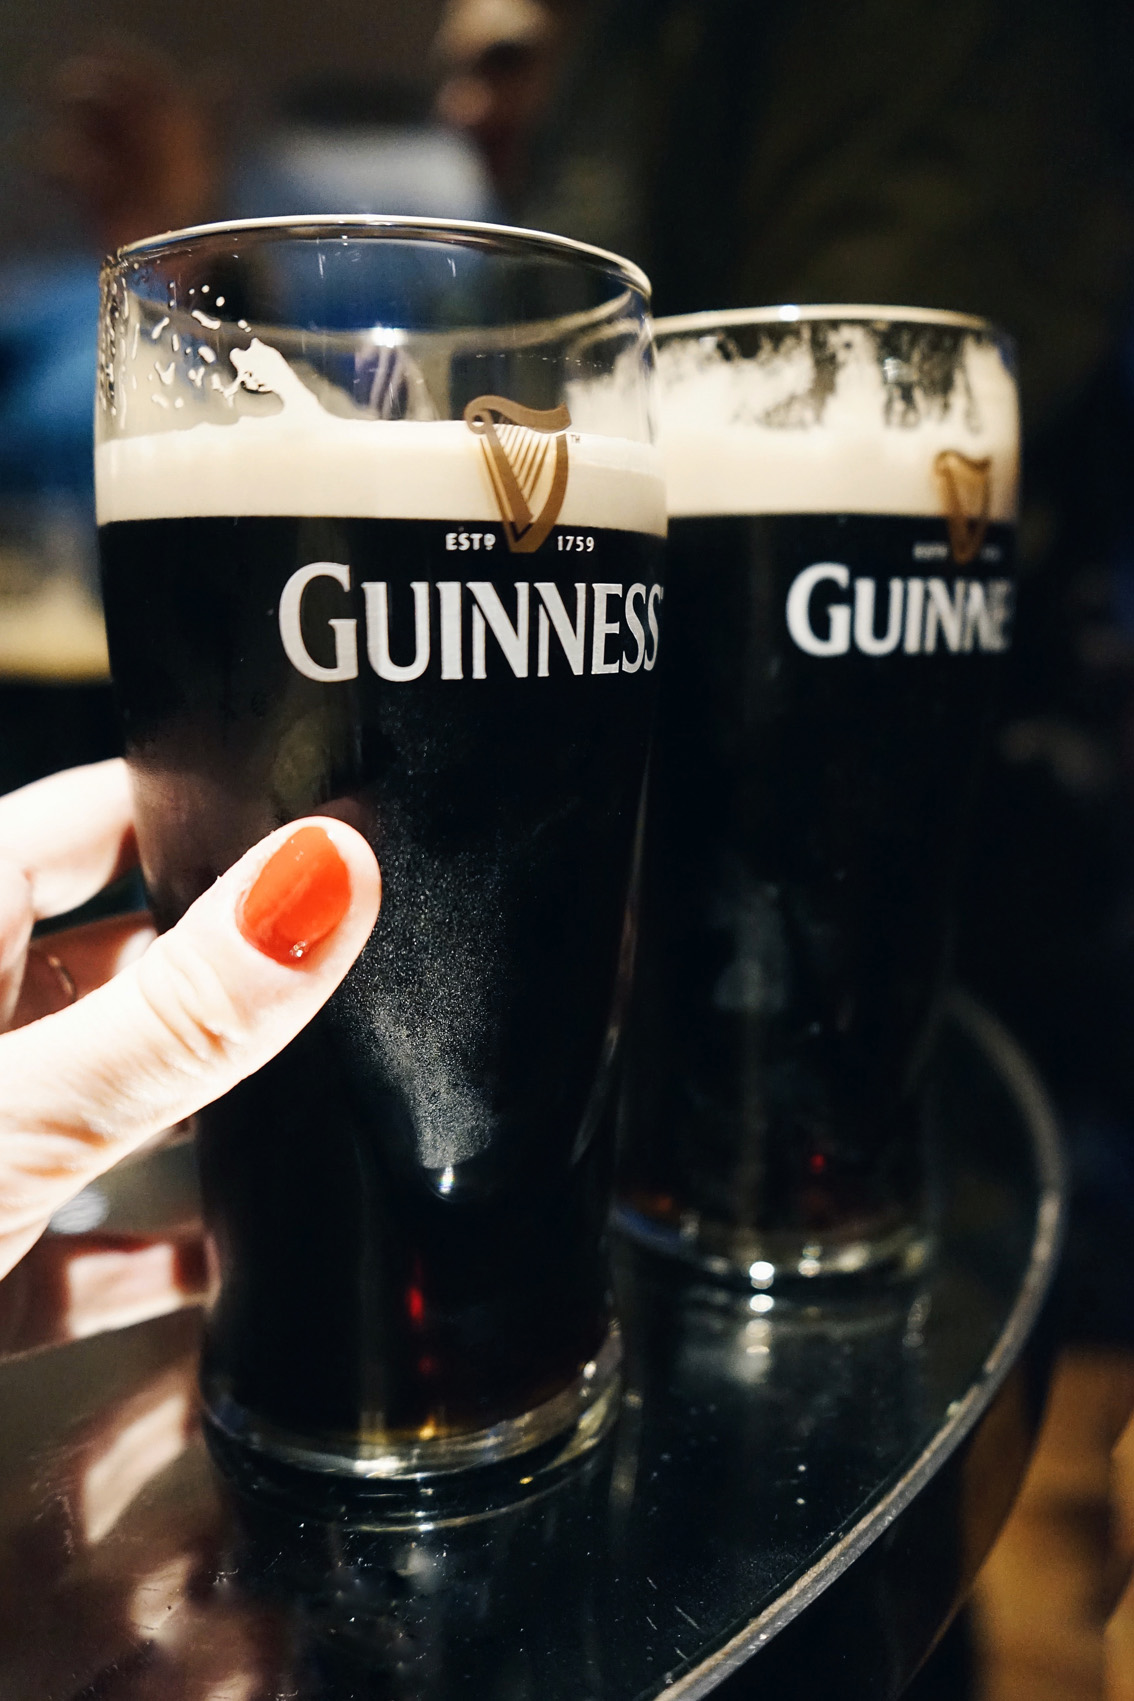 16 Ireland on the road: where to go, what to eat and where to stay in Dublin.